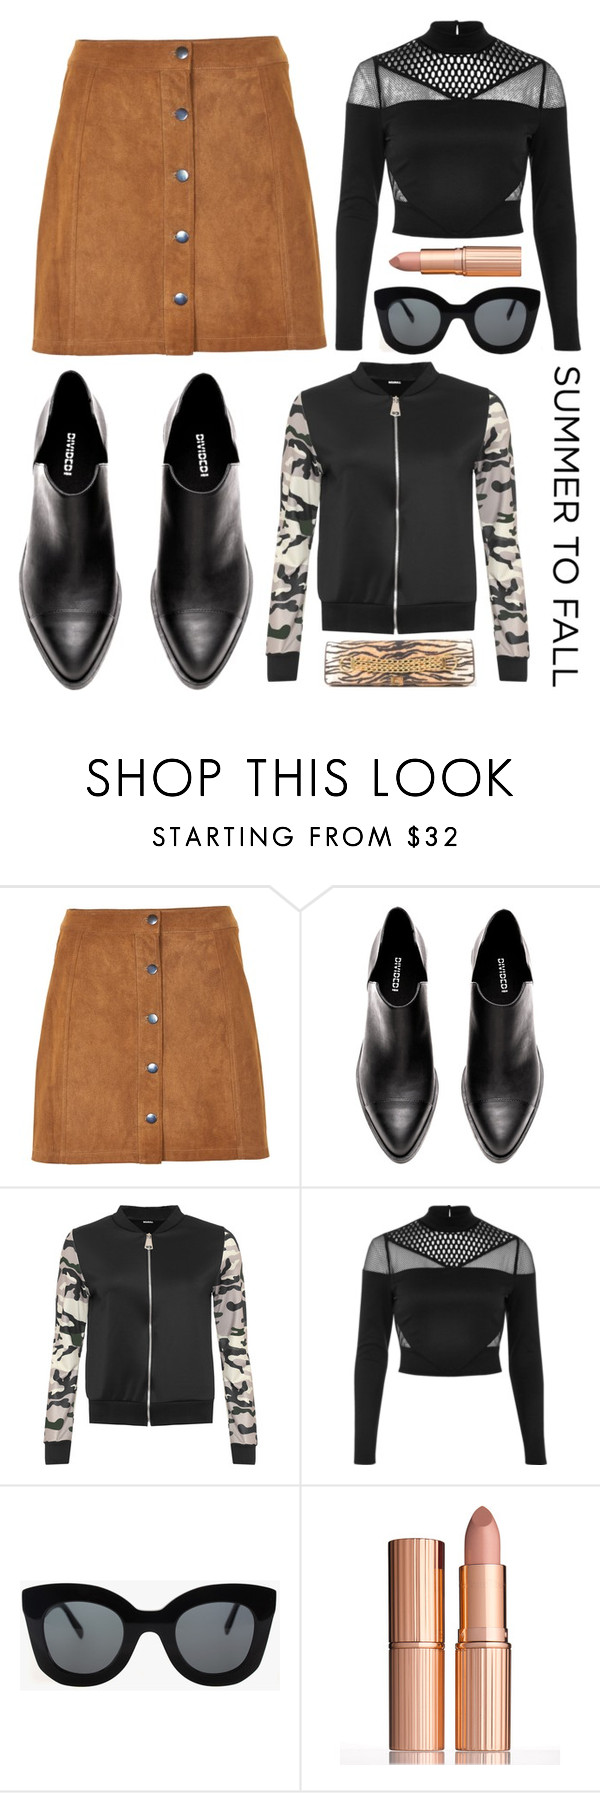 """""""Hydee"""" by goingdigi on Polyvore featuring Soaked in Luxury, WearAll, River Island, CÉLINE, Charlotte Tilbury and ESCADA"""